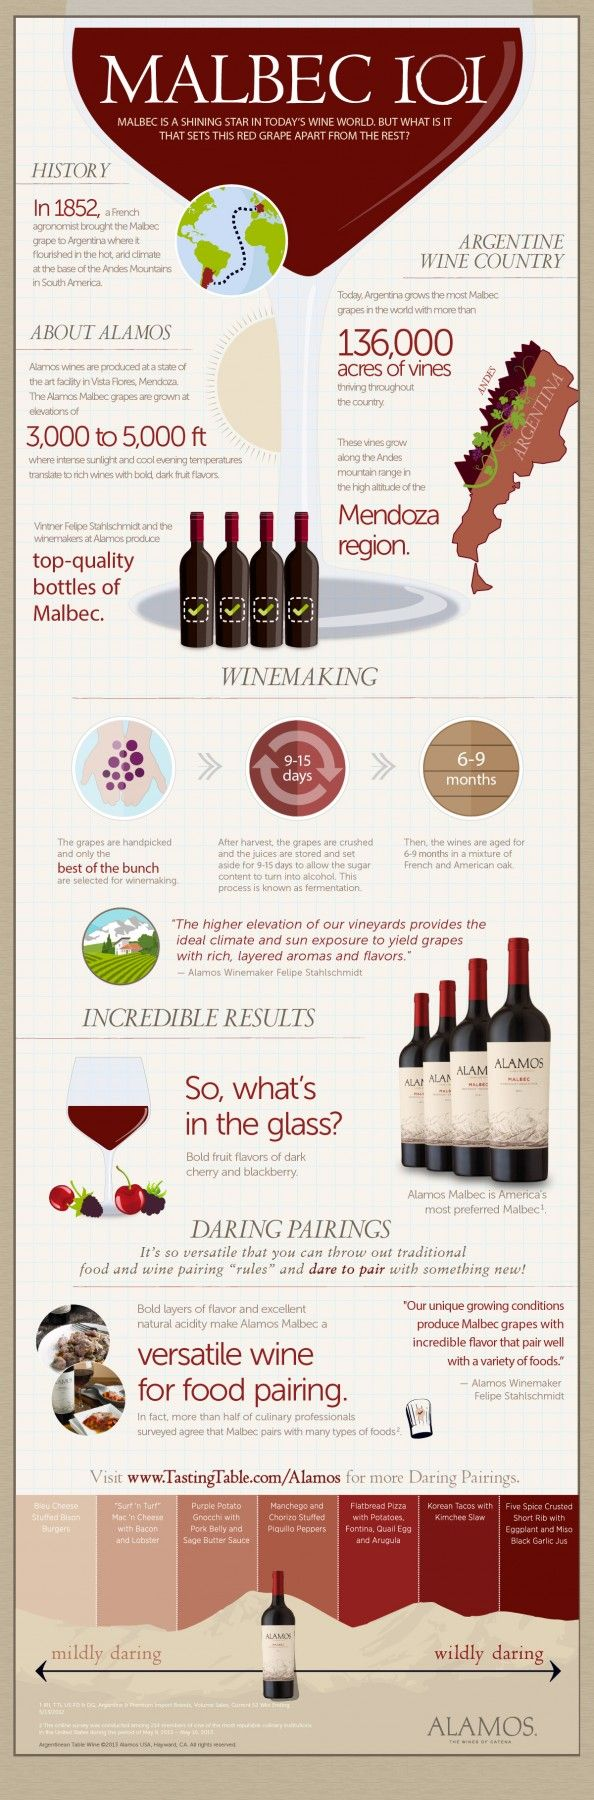 Food and wine pairing with Malbec red wine.